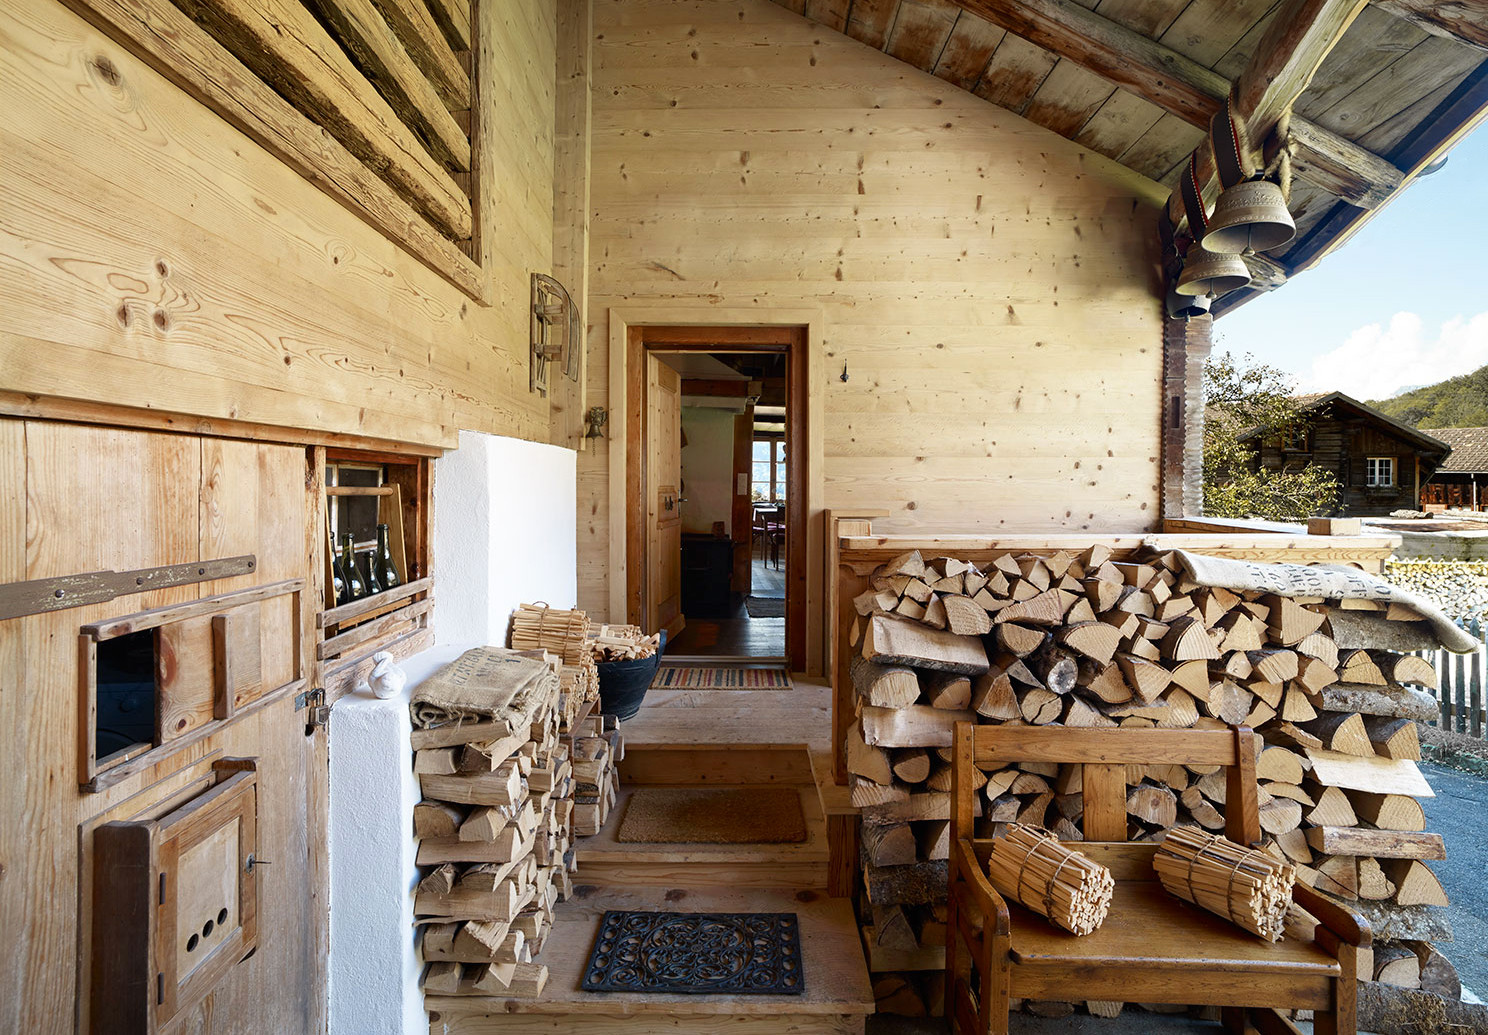 Stacks and bundles of wood, as well as traditional cowbells, welcome visitors to Patrick Schaffterand Werner Jahnel's chalet in Switzerland's Bernese Oberland.